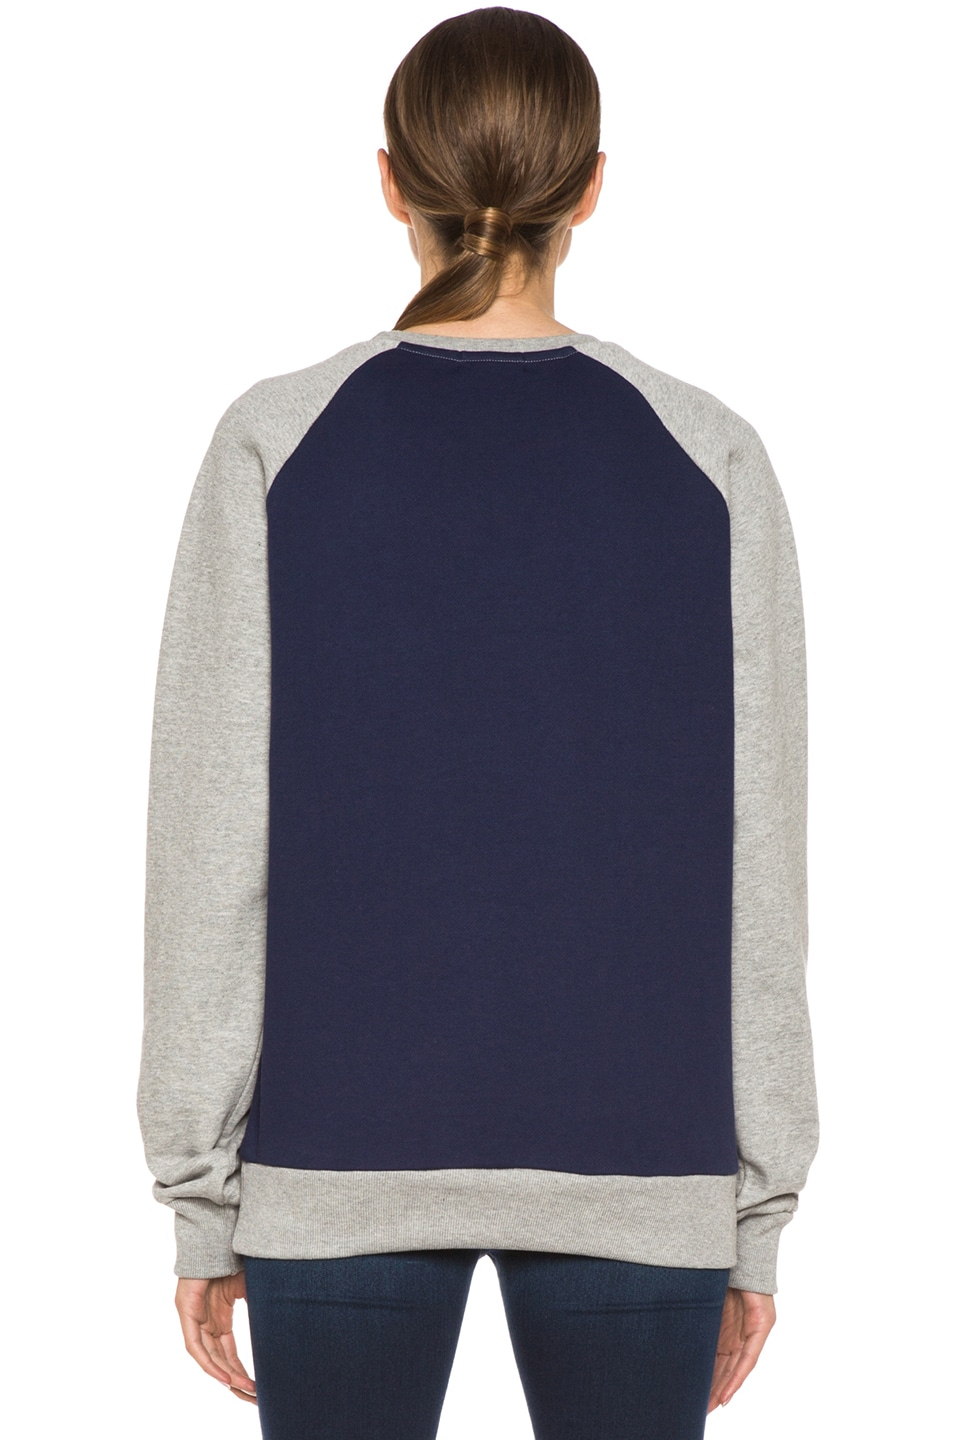 Image 4 of Kitsune Tee Kitsune Paris Cotton Sweater Melange in Navy & Grey